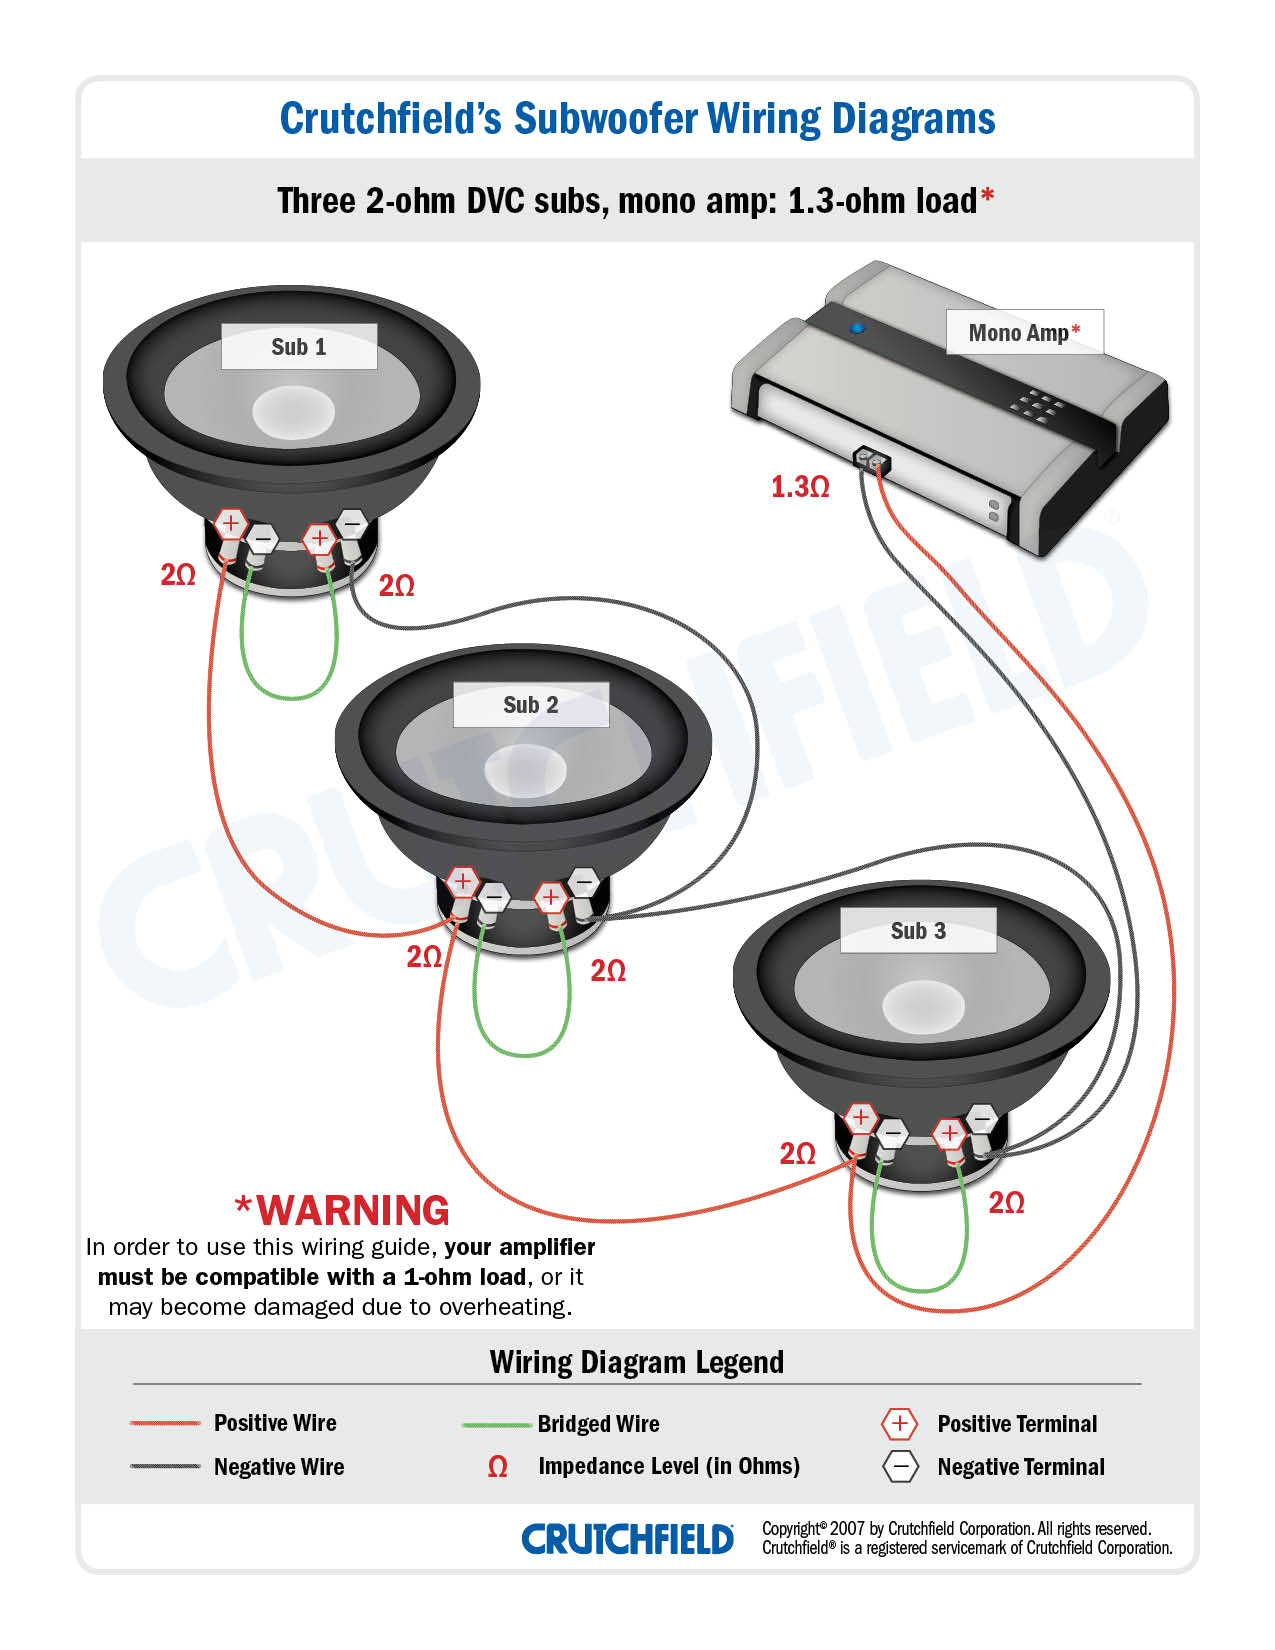 ron three dvc 2 ohm subs get wired to a mono amp capable of driving a 1 ohm load